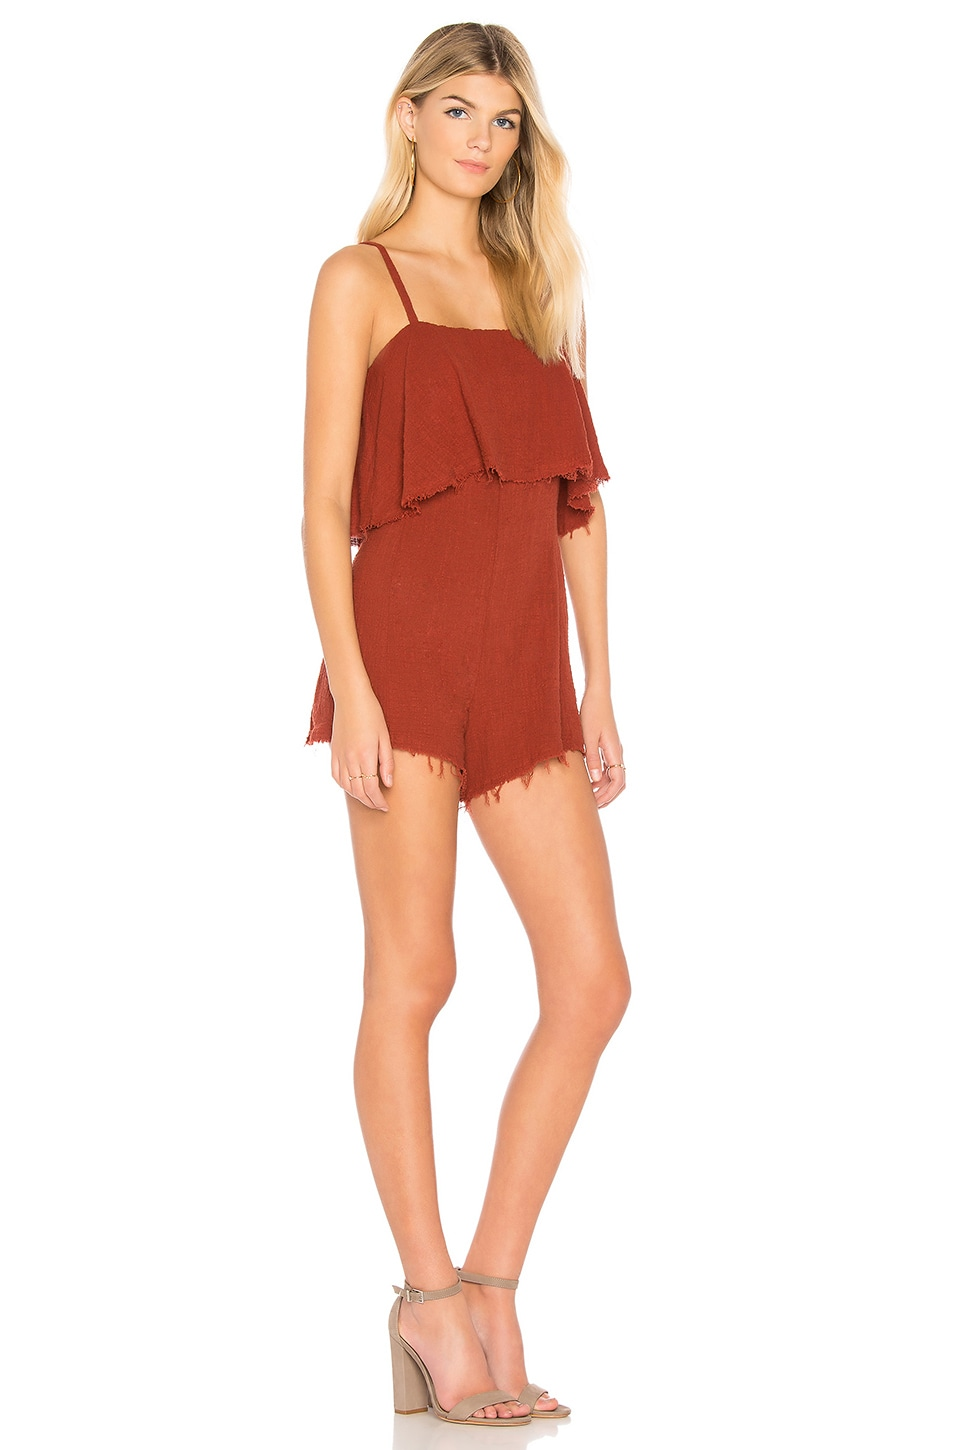 Rising Tides Playsuit